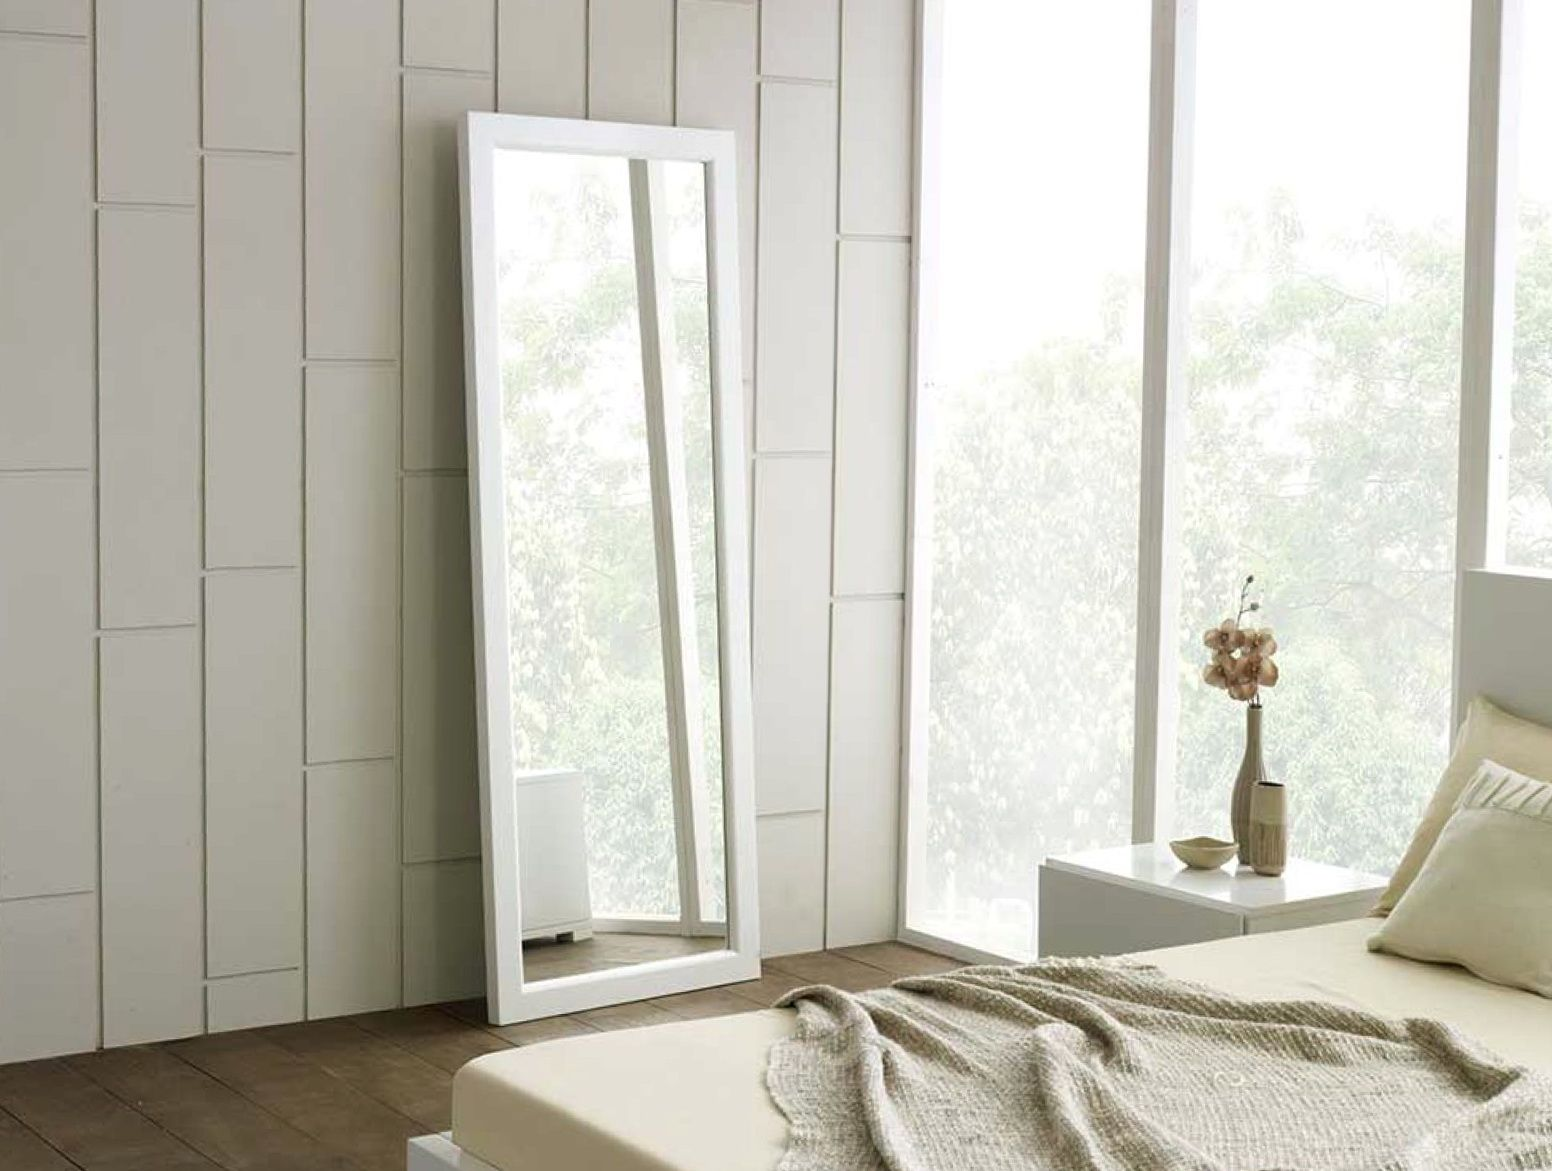 Pleasing Full Length Mirrors Wall Mounted Theplanmagazinecom